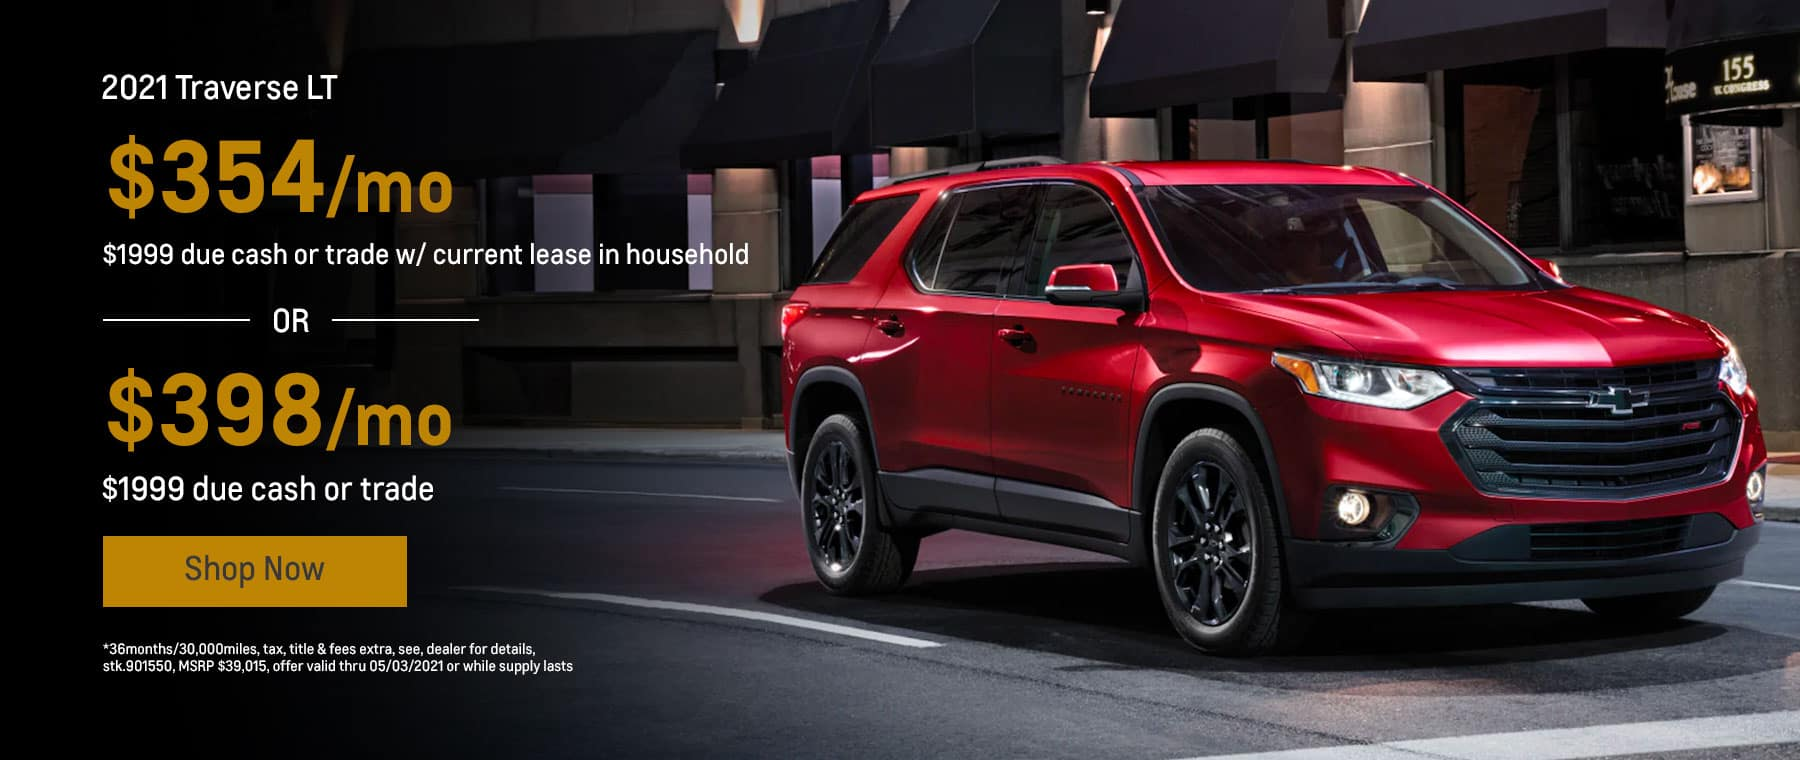 2021 Traverse LT, $354mo.* $1999 due cash or trade w/ current lease in household OR $398mo.* $1999 due cash or trade